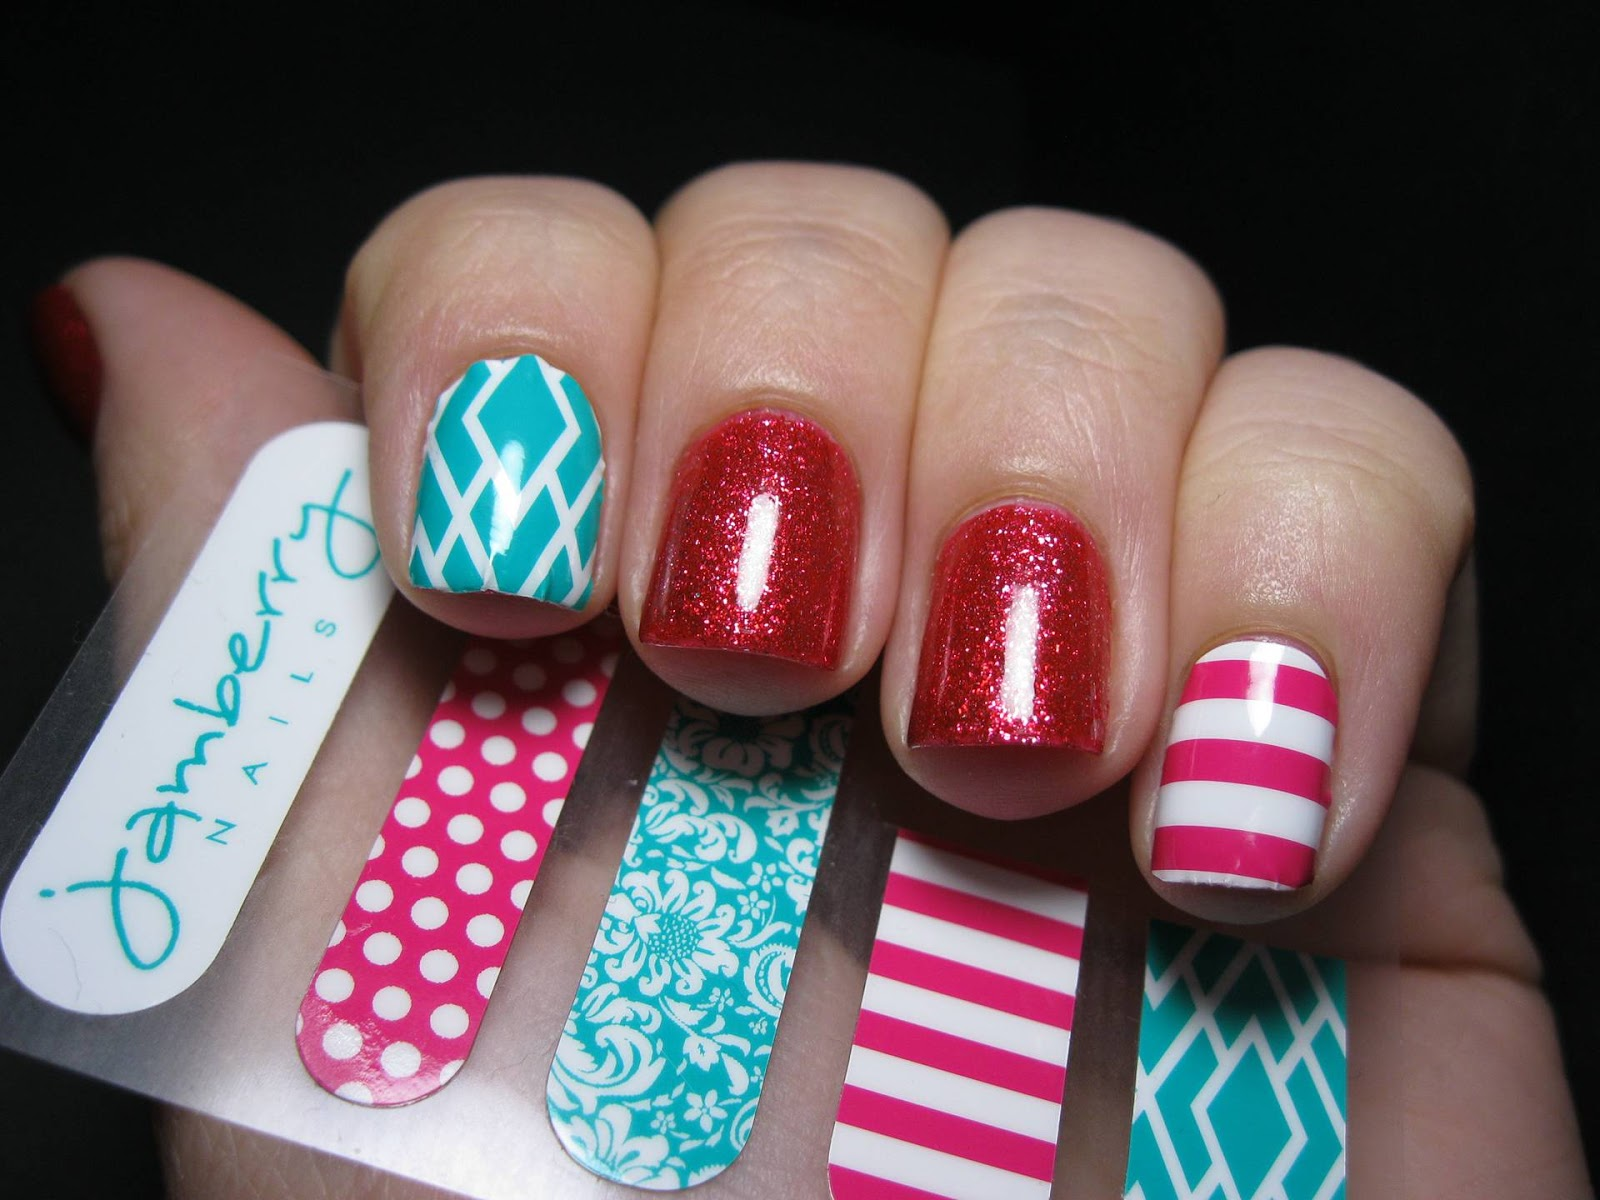 Jamberry Nail Shield Review - Polish Etc.